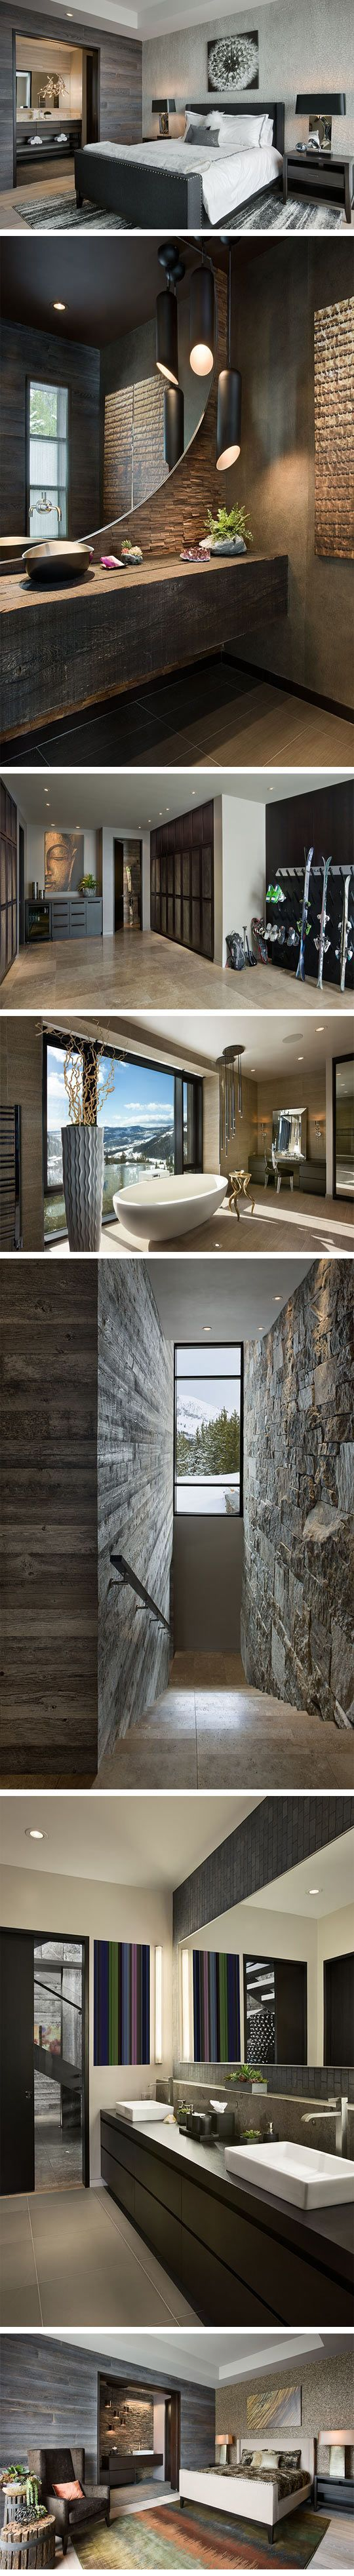 modern interior ◉ re-pinned by http://www.waterfront-properties.com/